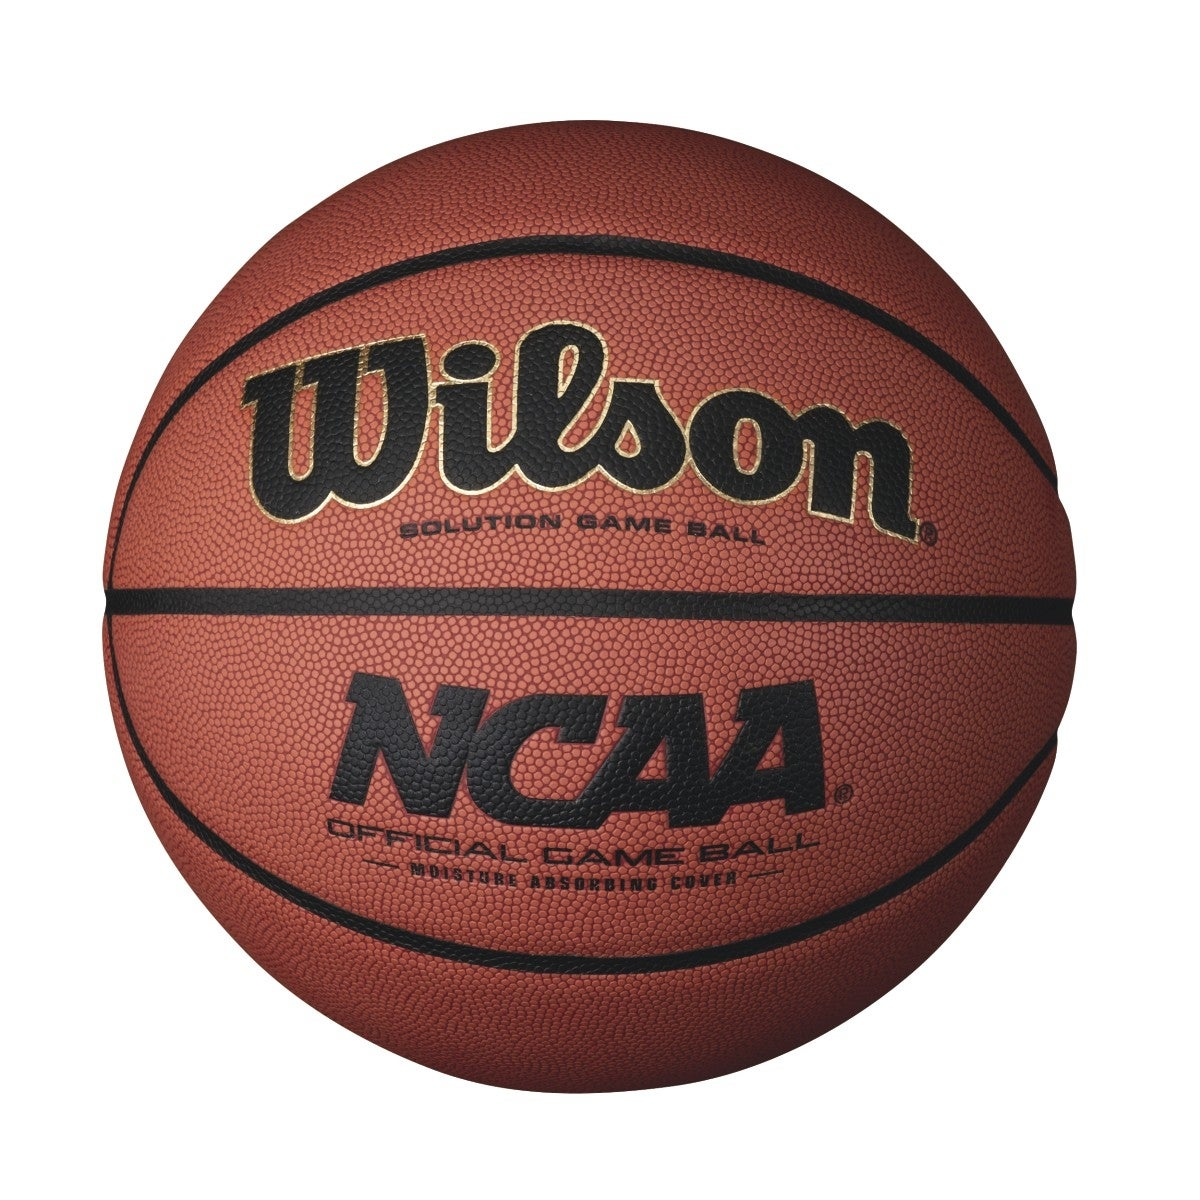 Basketball Ball Wilson Basketball Wilson Sporting Goods